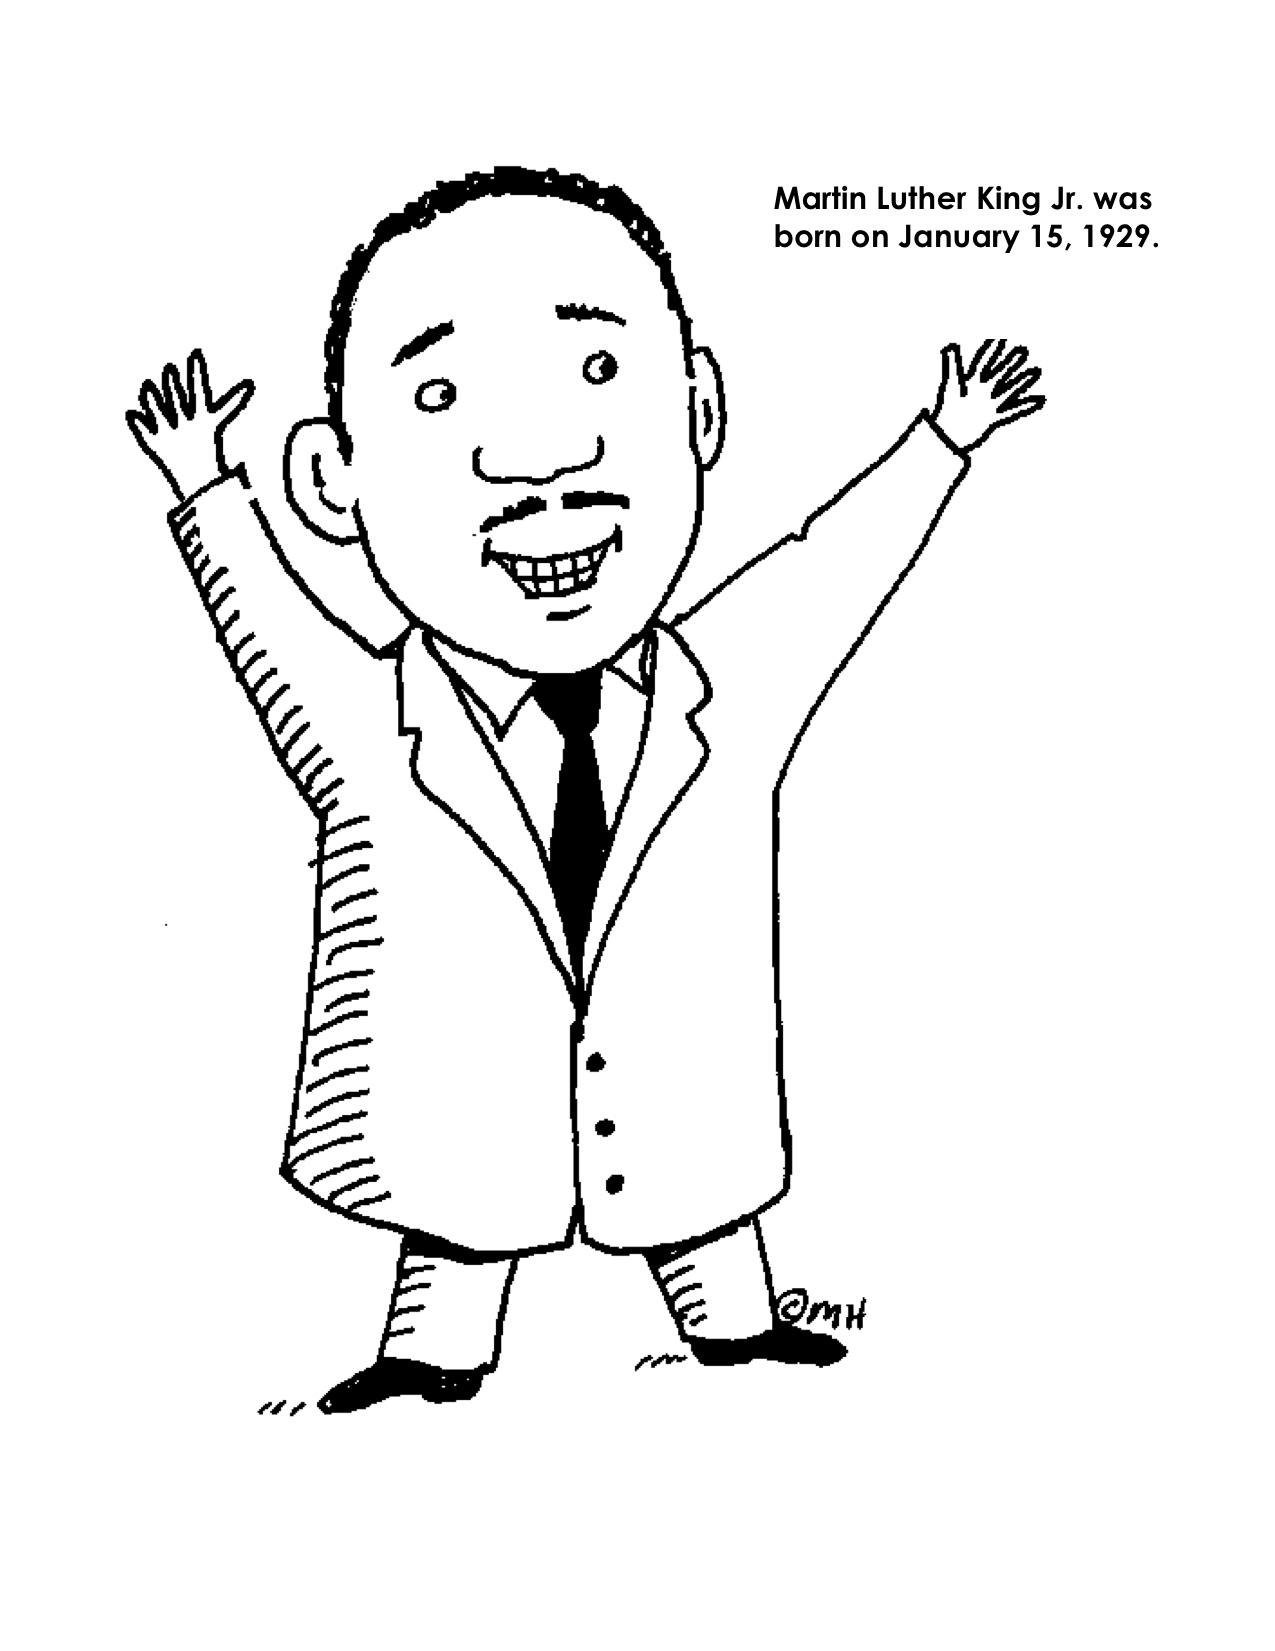 Coloring Pages : Free Printable Colorings For Martin Luther King Jr - Martin Luther King Free Printable Coloring Pages